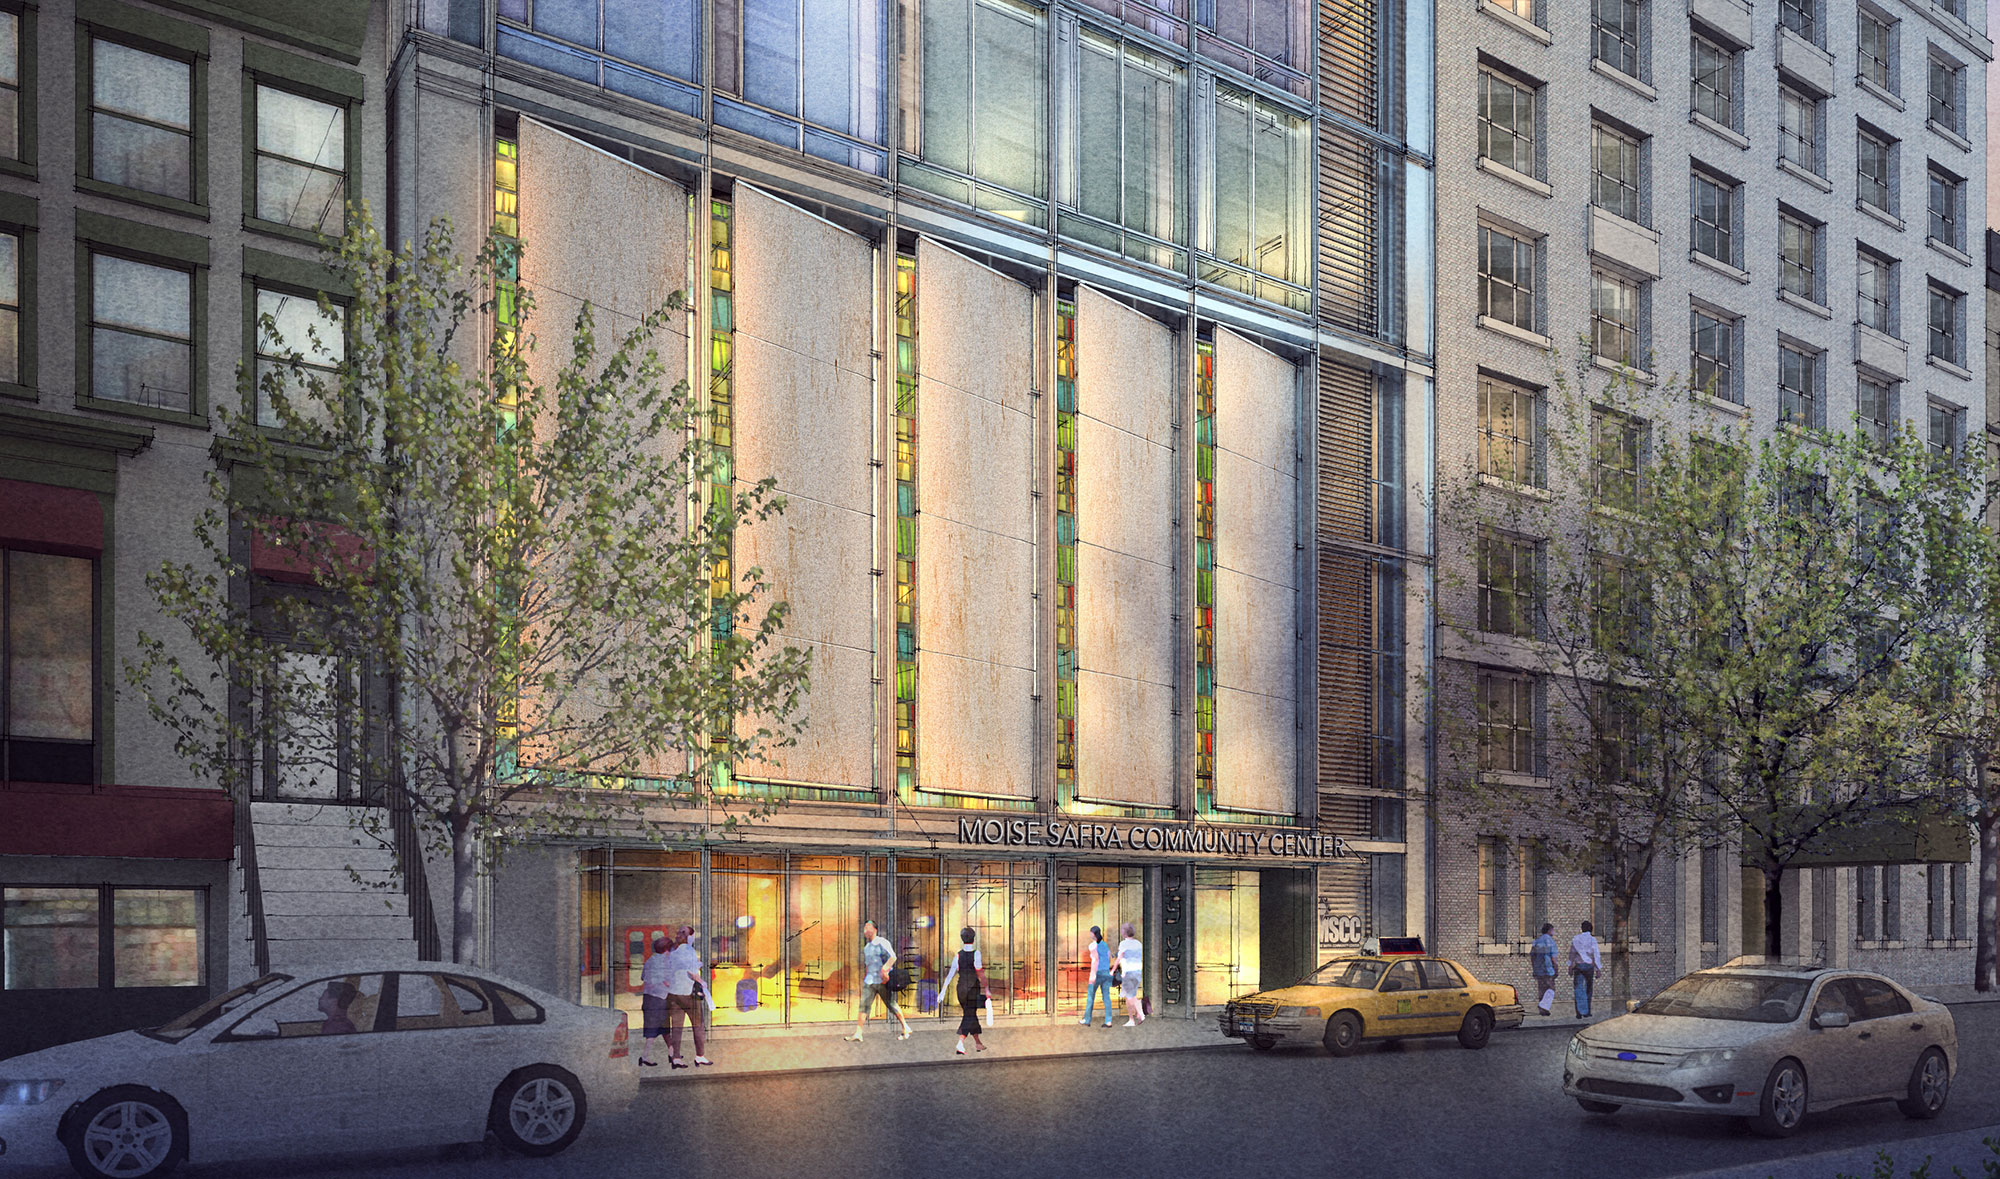 Rendering of Moise Safra Community Center, 130 East 82nd Street. By PBDW Architects via MSCC